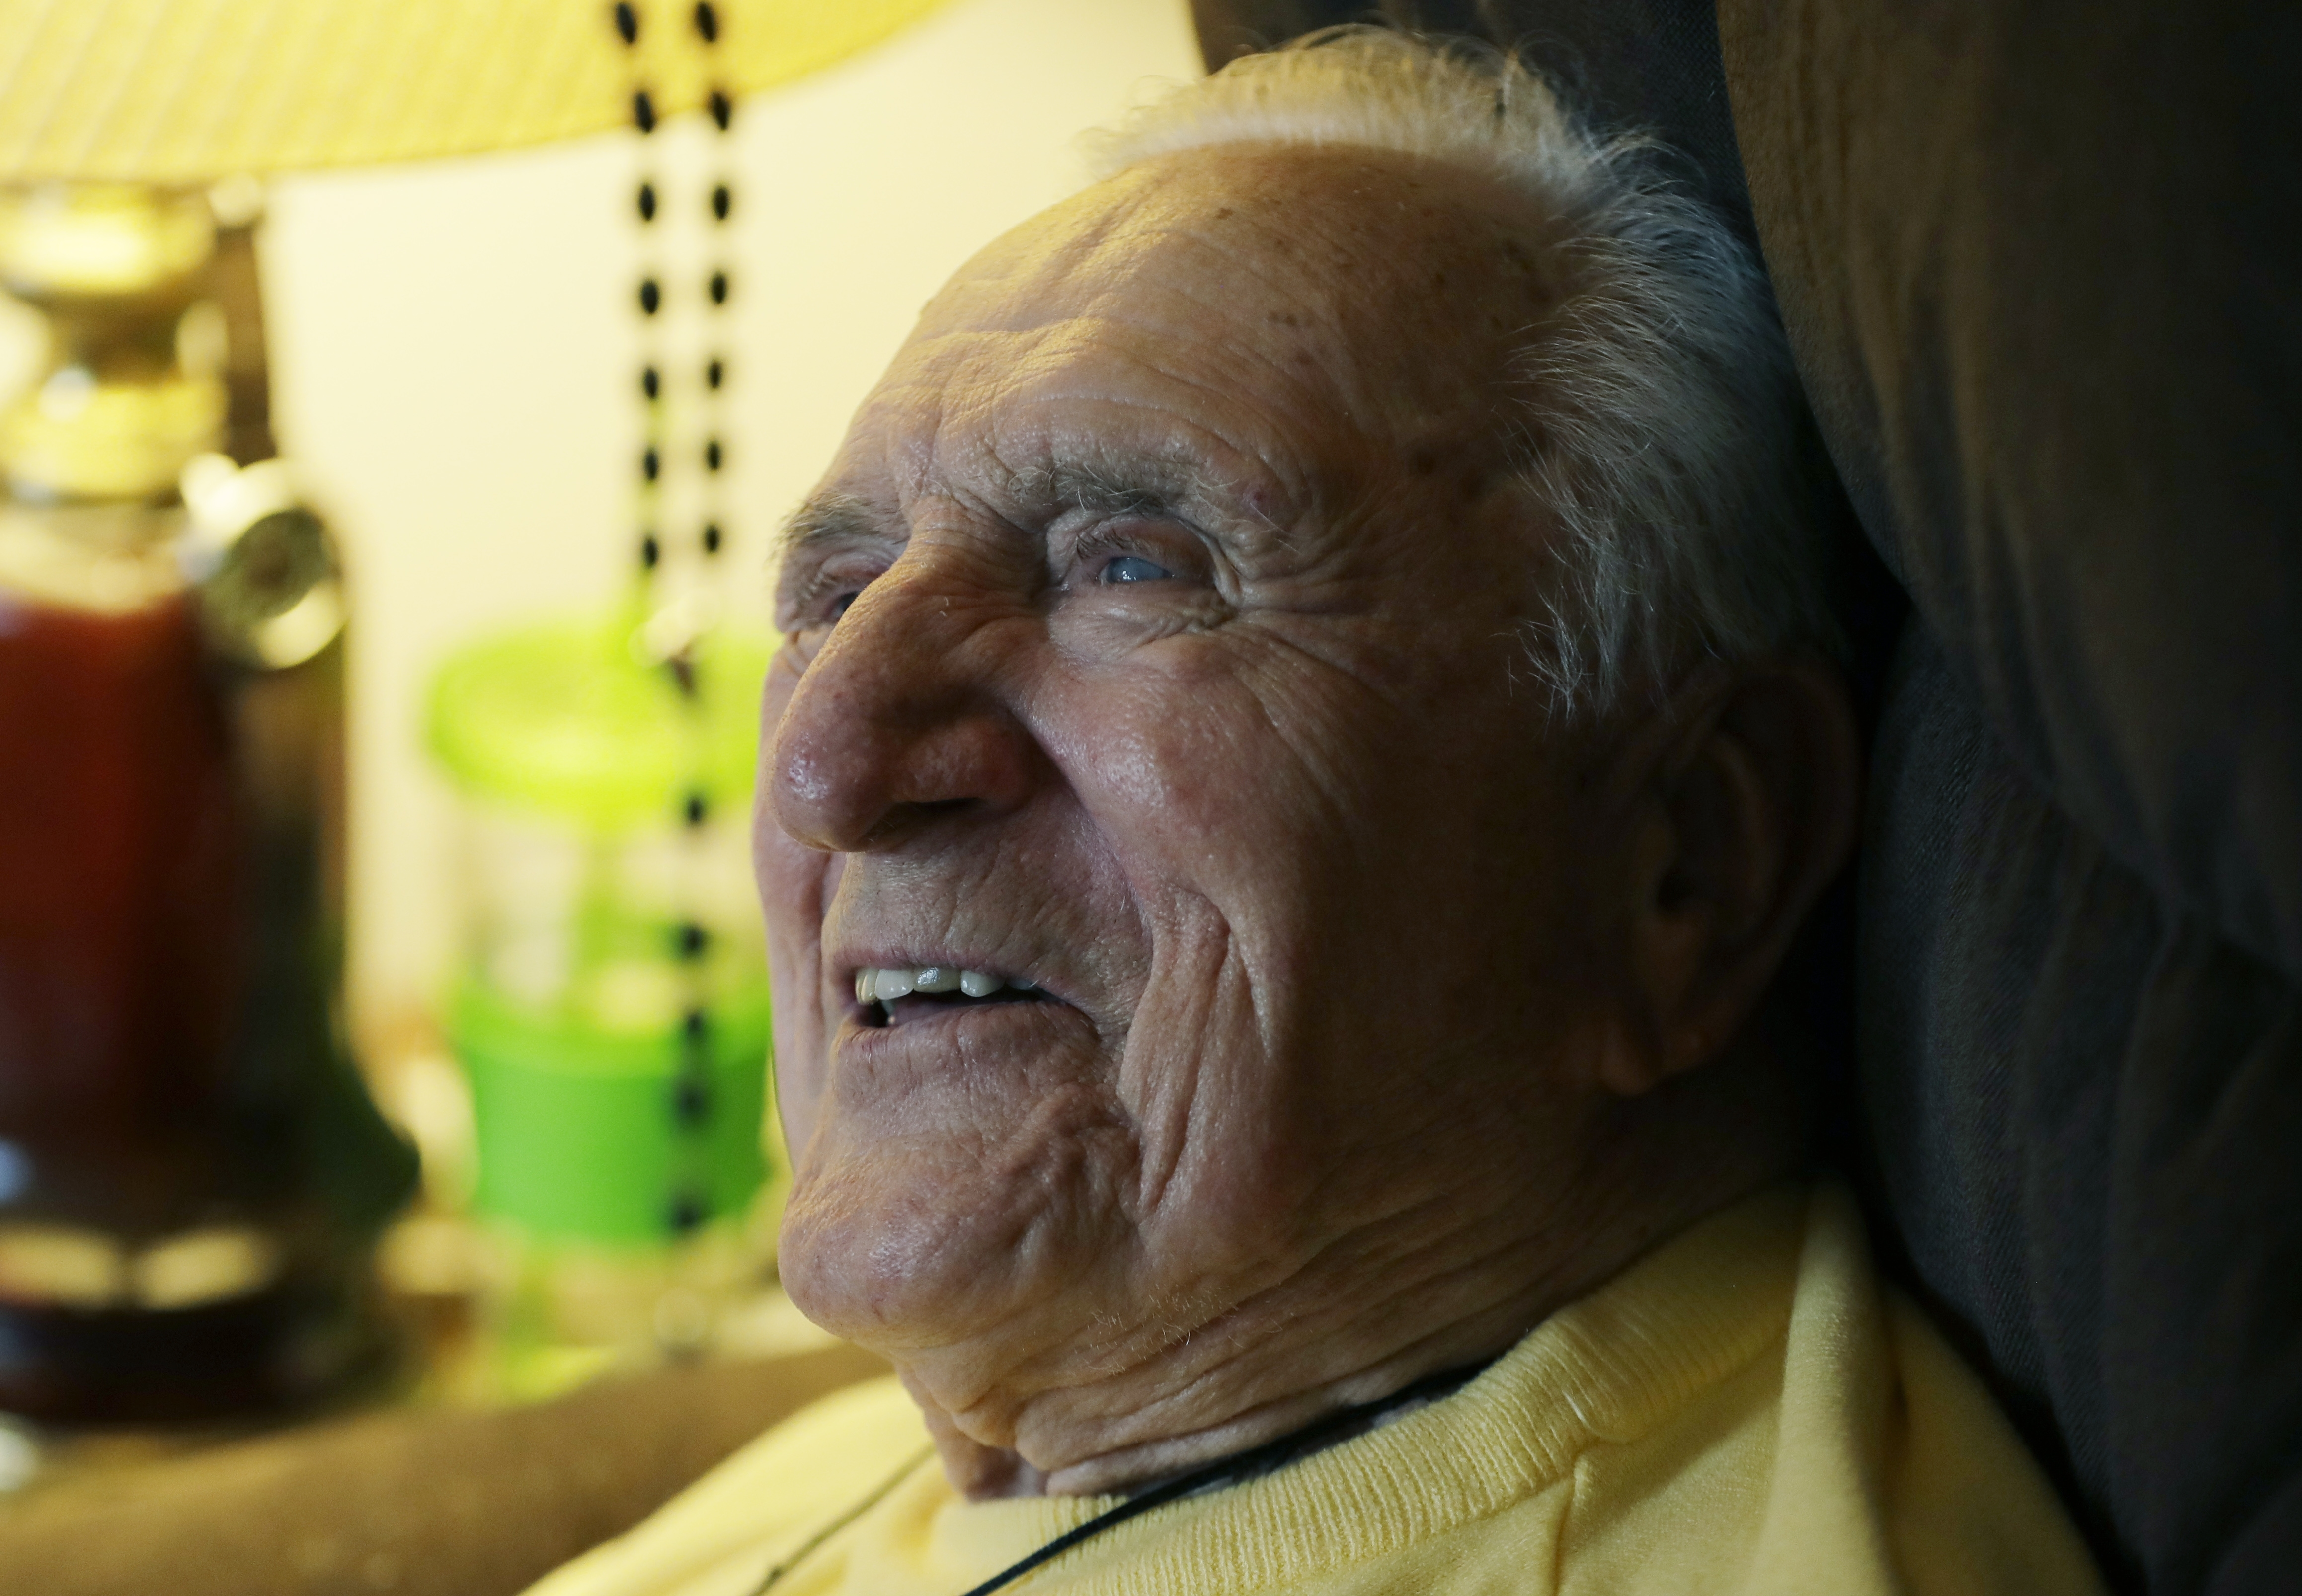 Ed Mierkowicz, the one player still alive who appeared in the 1945 World Series, when the Chicago Cubs reached Game 7 before losing to Detroit is interviewed in his home, Wednesday, Nov. 2, 2016, in Rochester Hills, Mich. (AP Photo/Carlos Osorio)